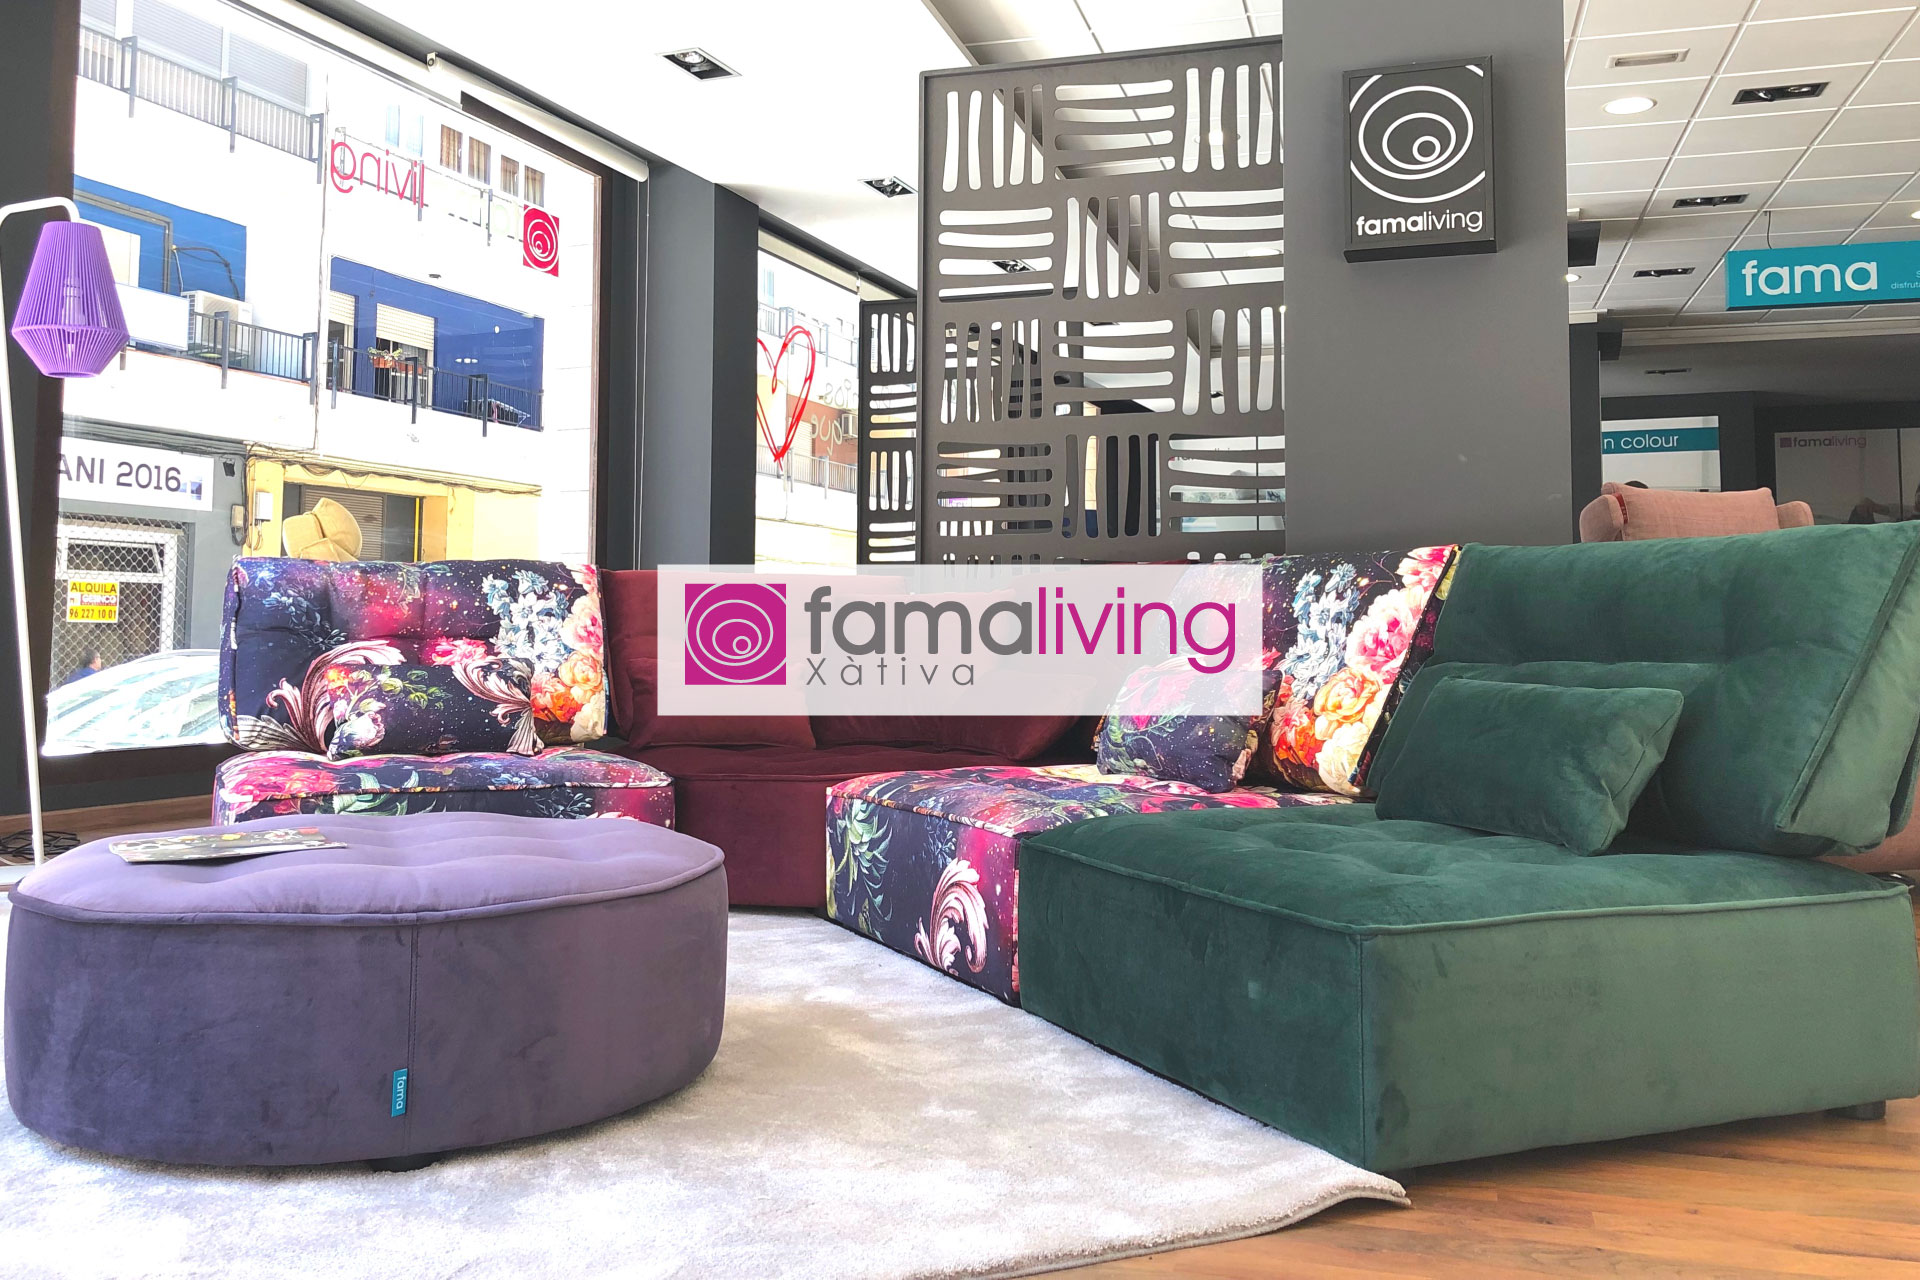 https://www.famaliving.com/xativa-en